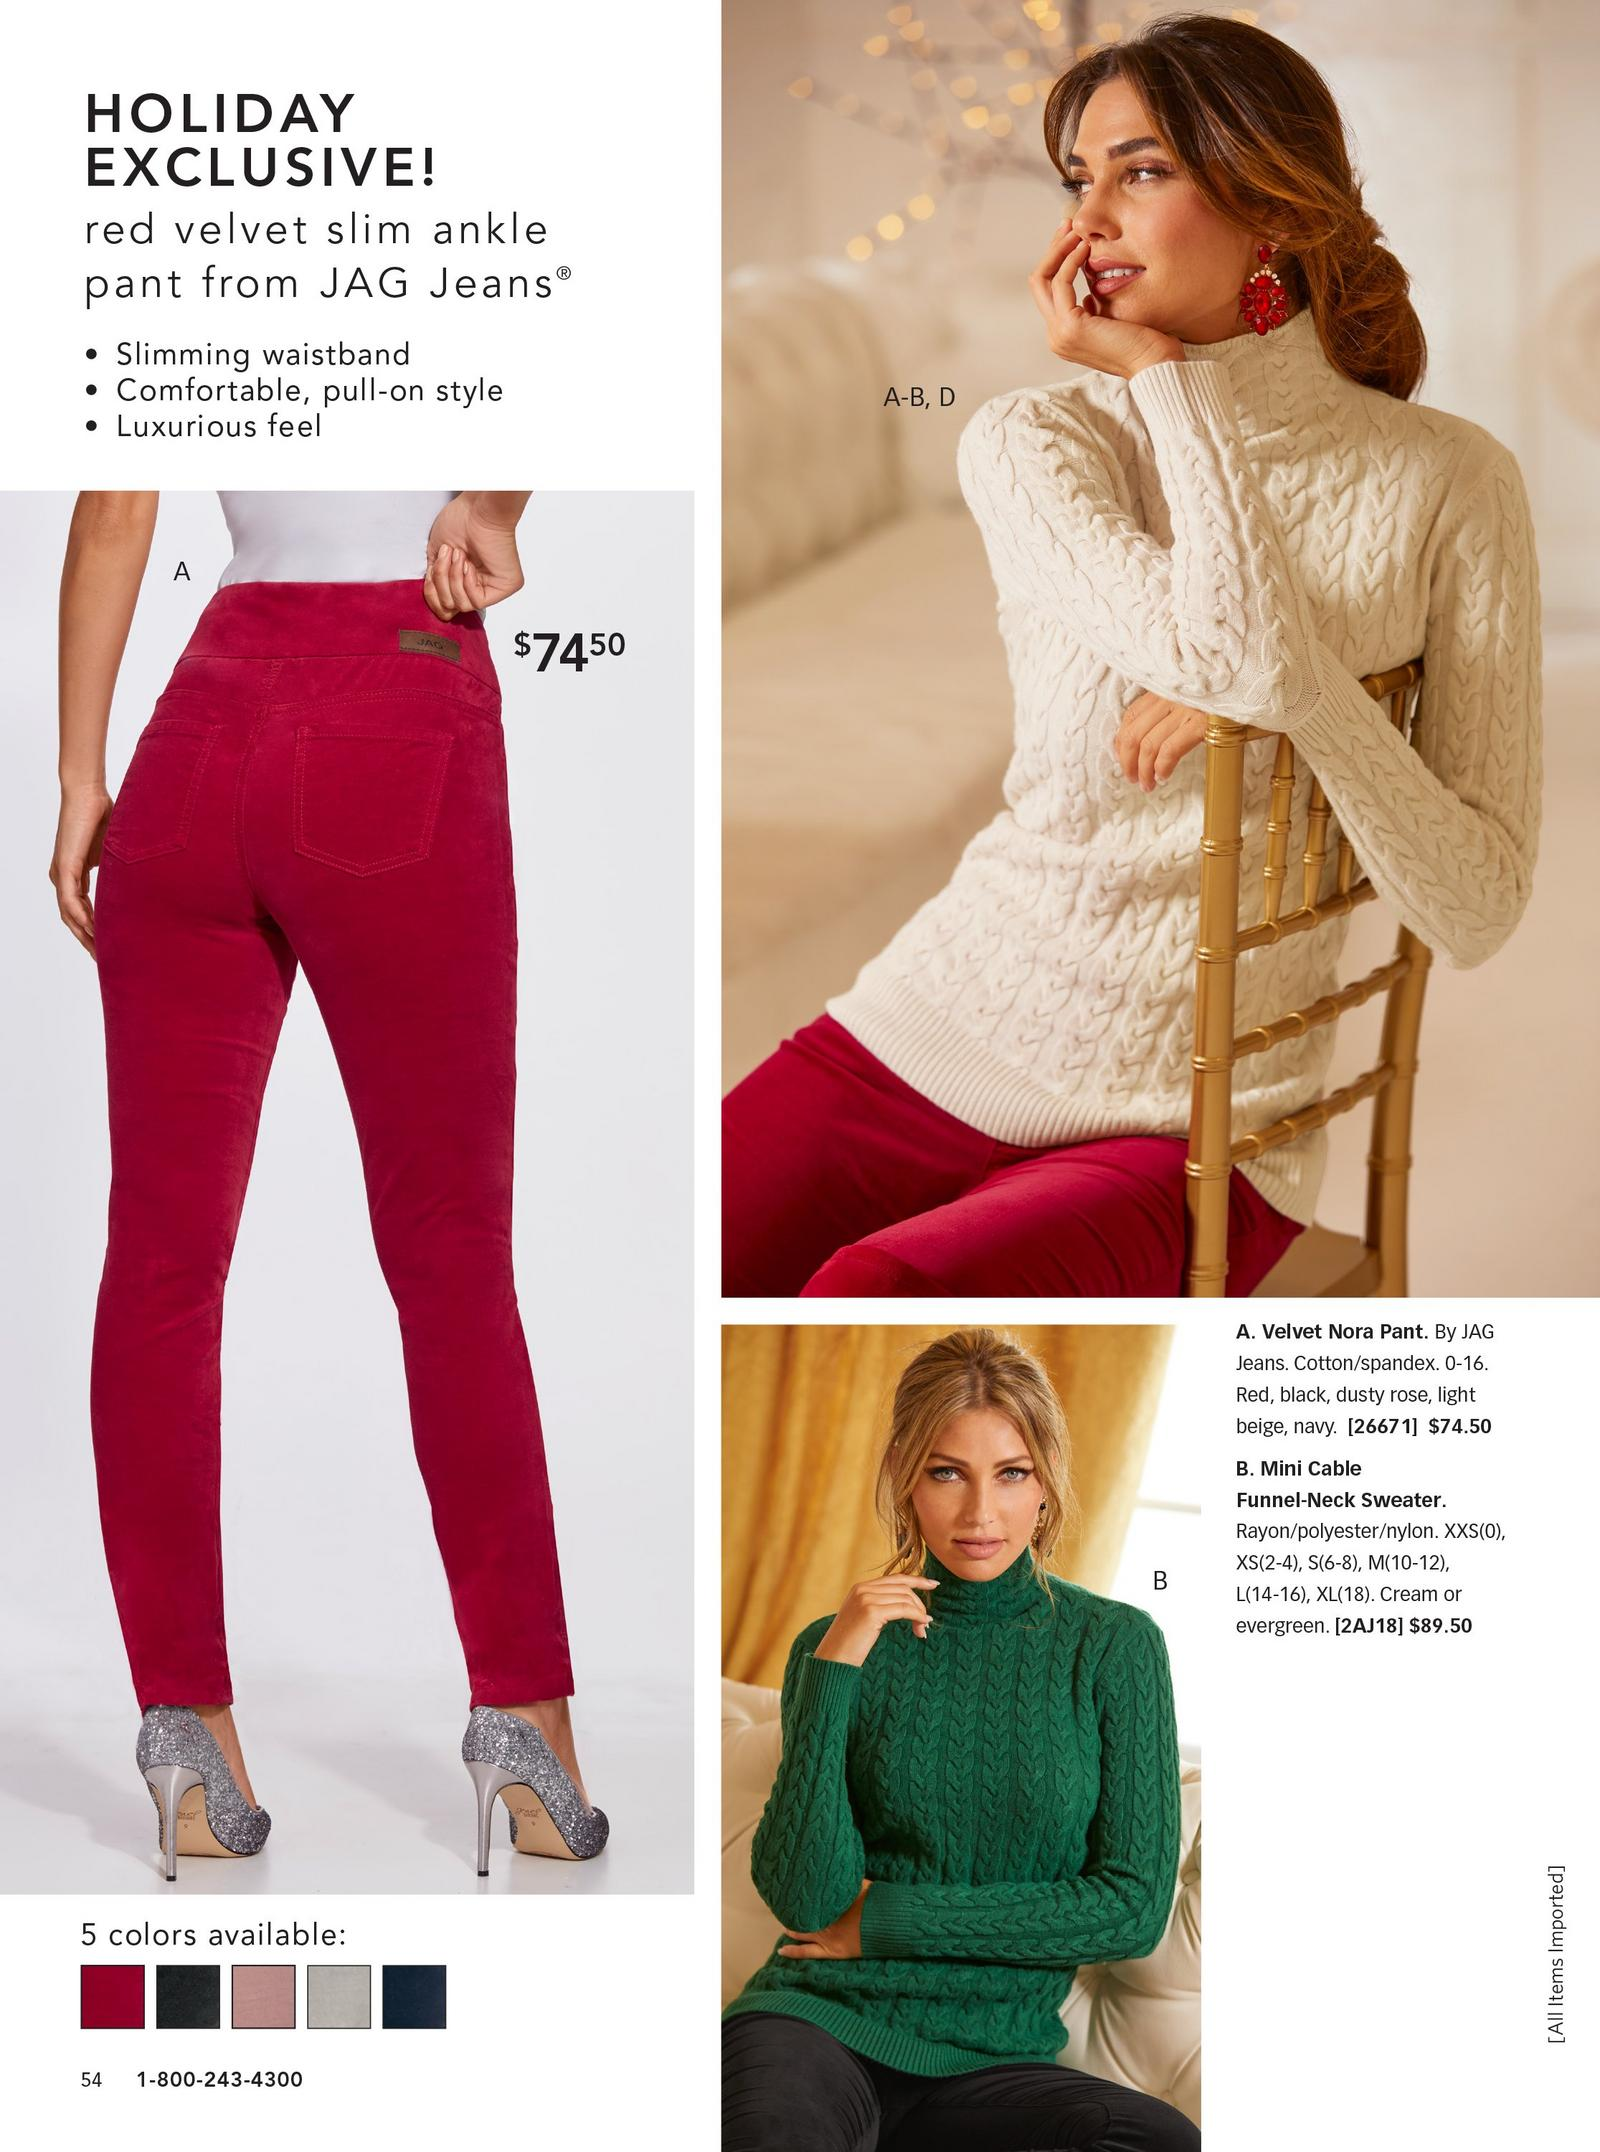 silo of red velvet nora pants to the left and two models wearing the same sweater, one in green and the other in cream, to the right.